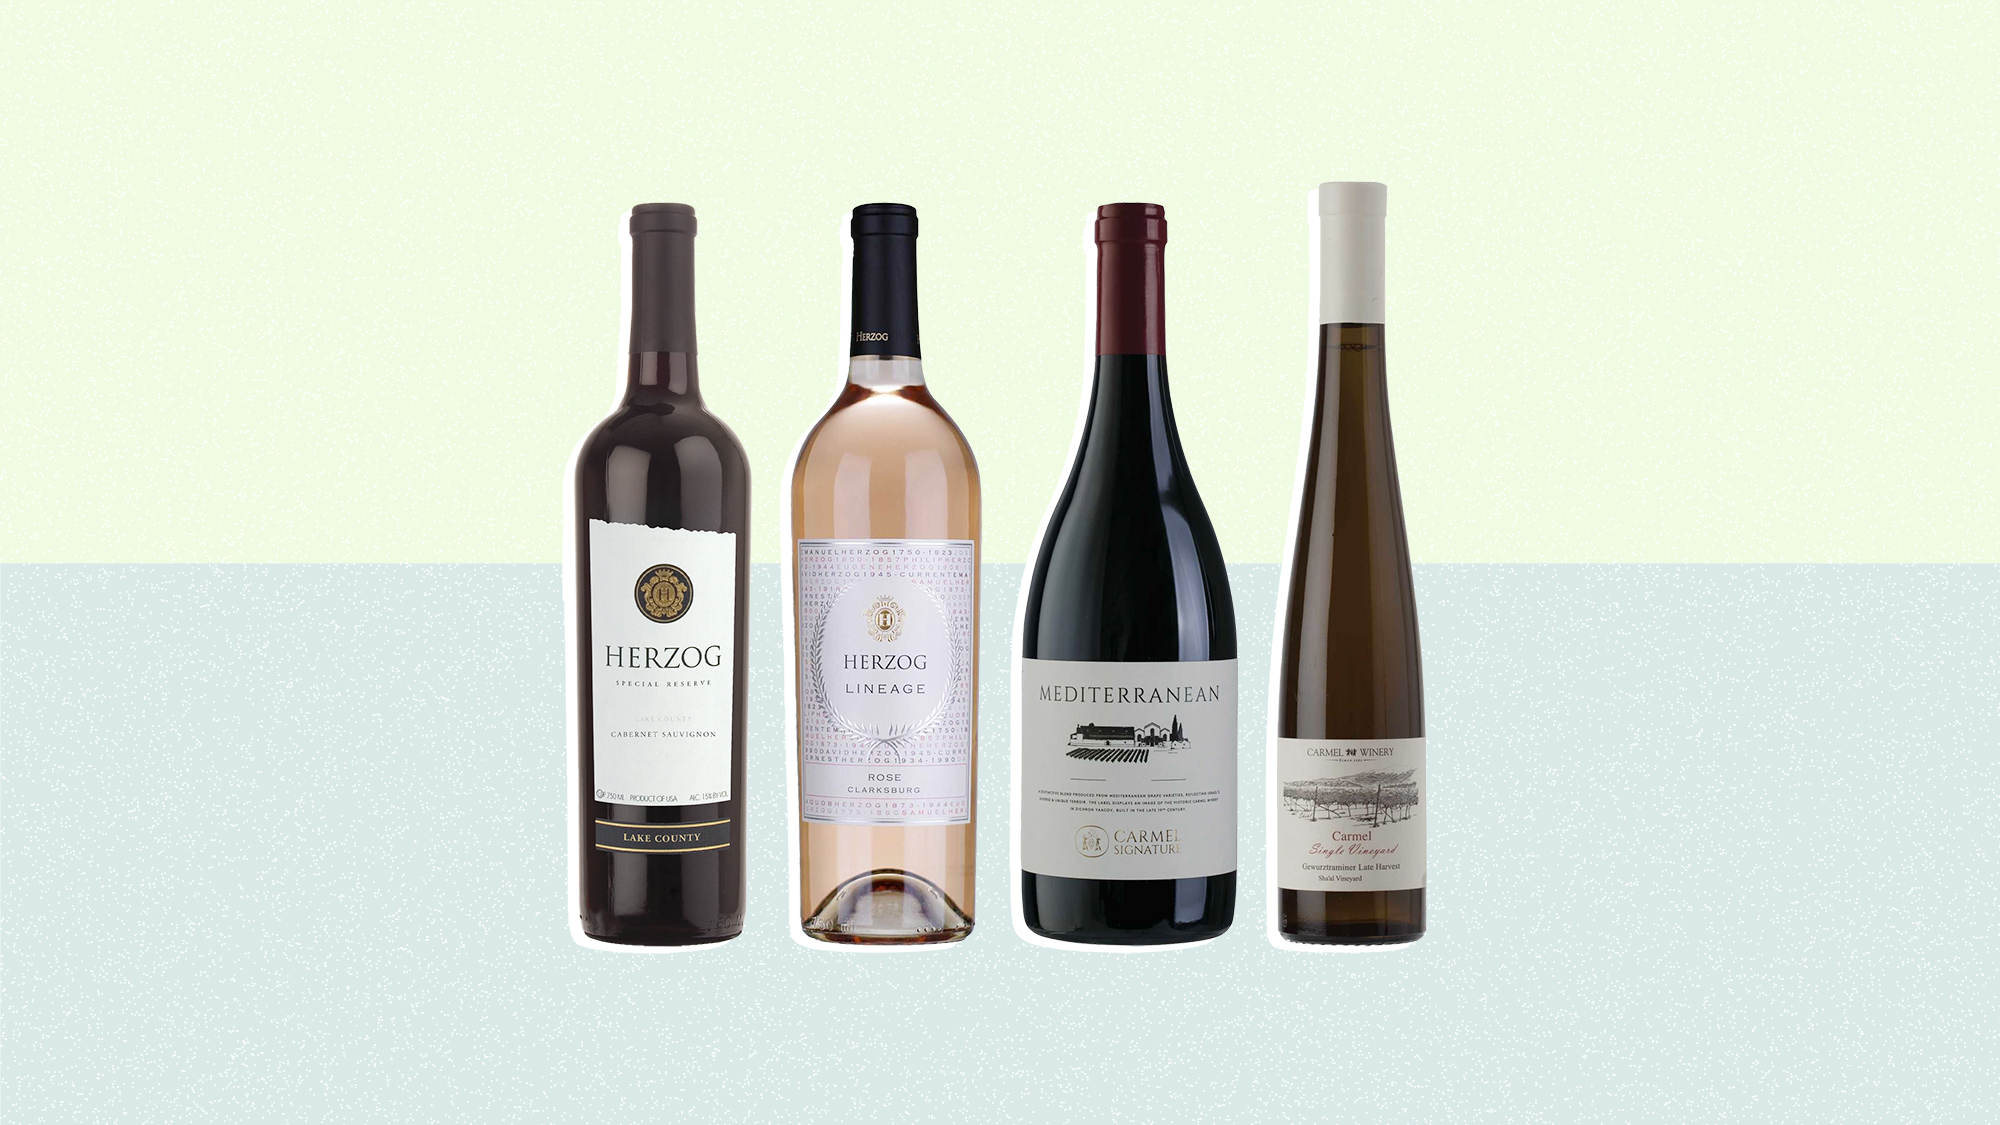 A selection of 4 kosher wines